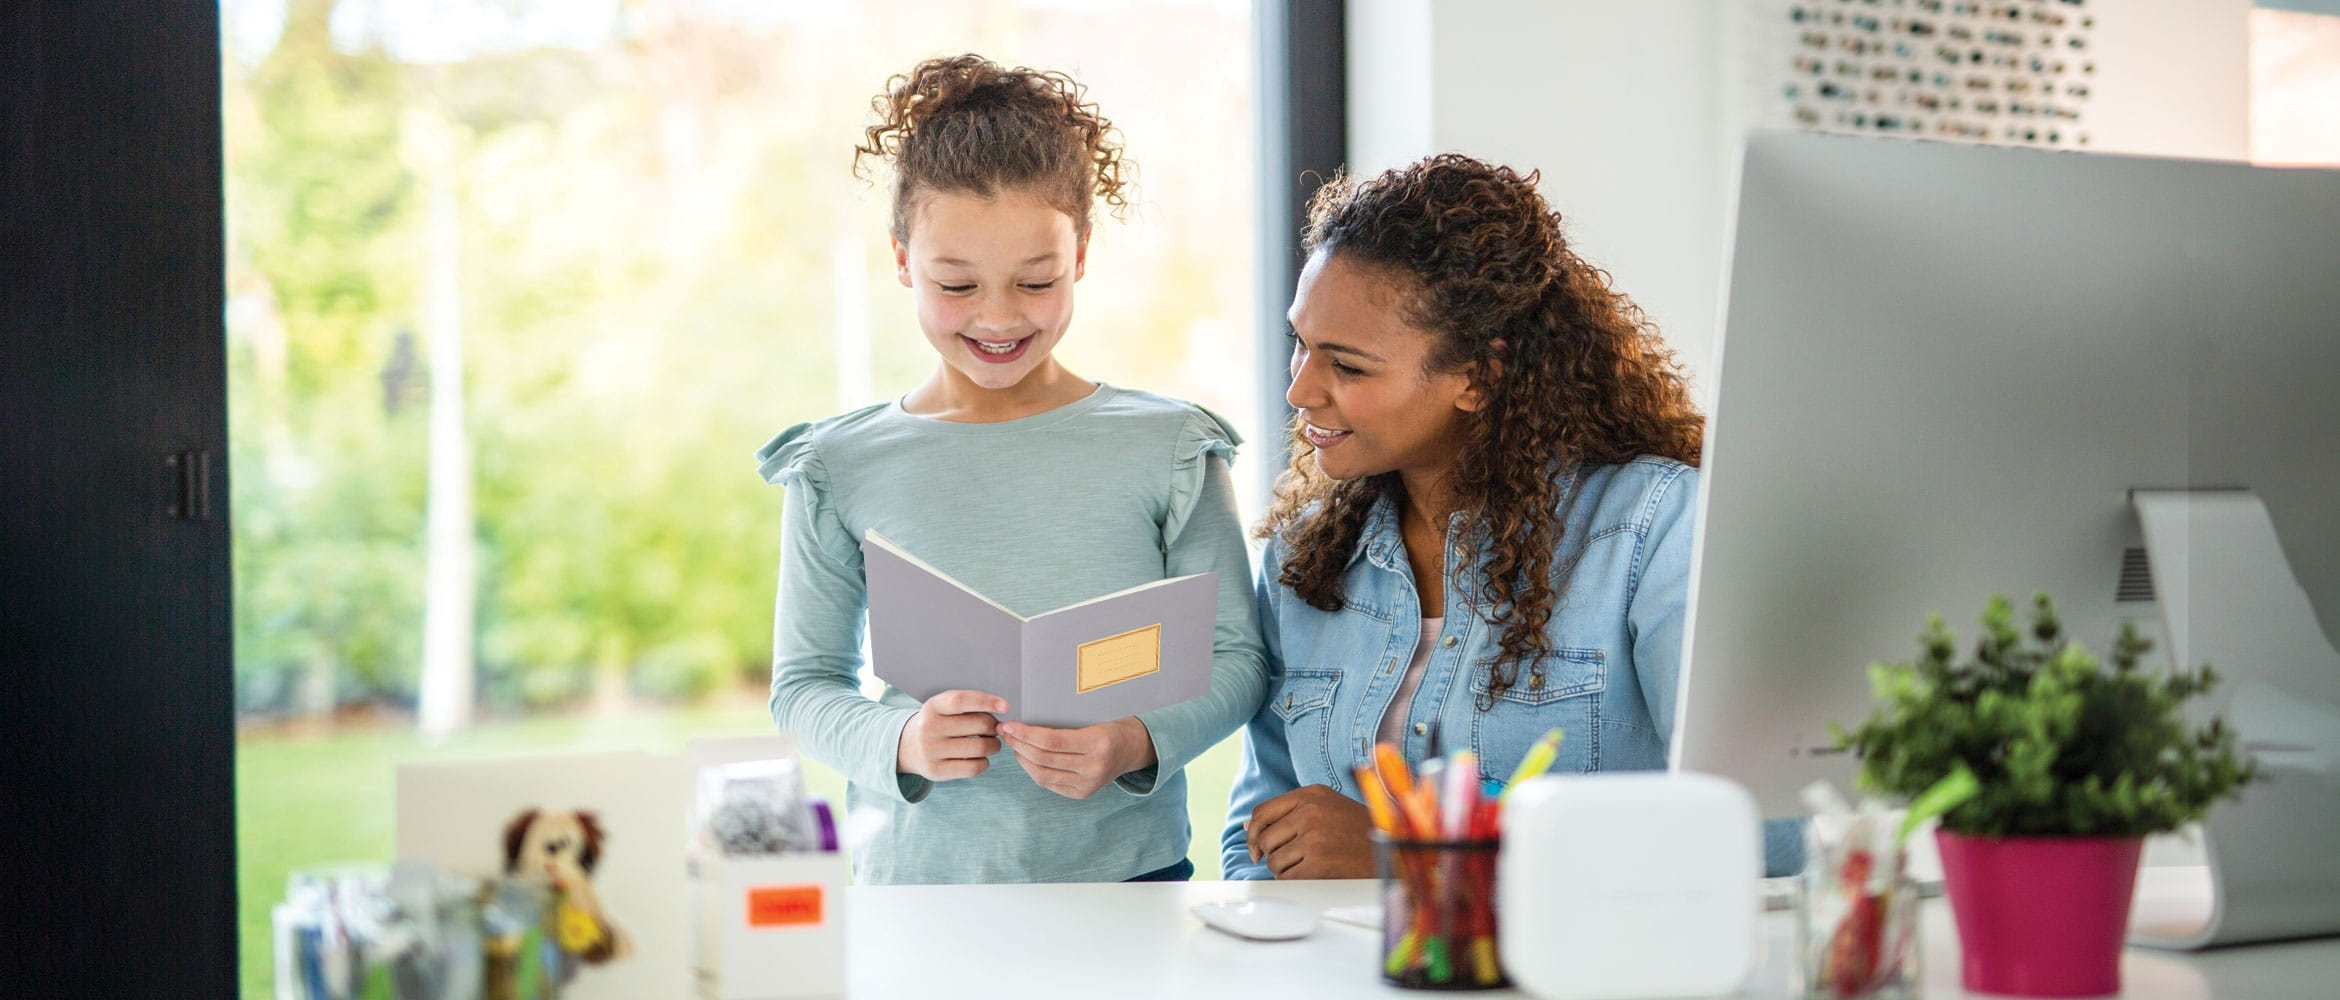 A woman and her little girl are at home laughing together while looking through a home schooling workbook created with Brother's Creative Center.